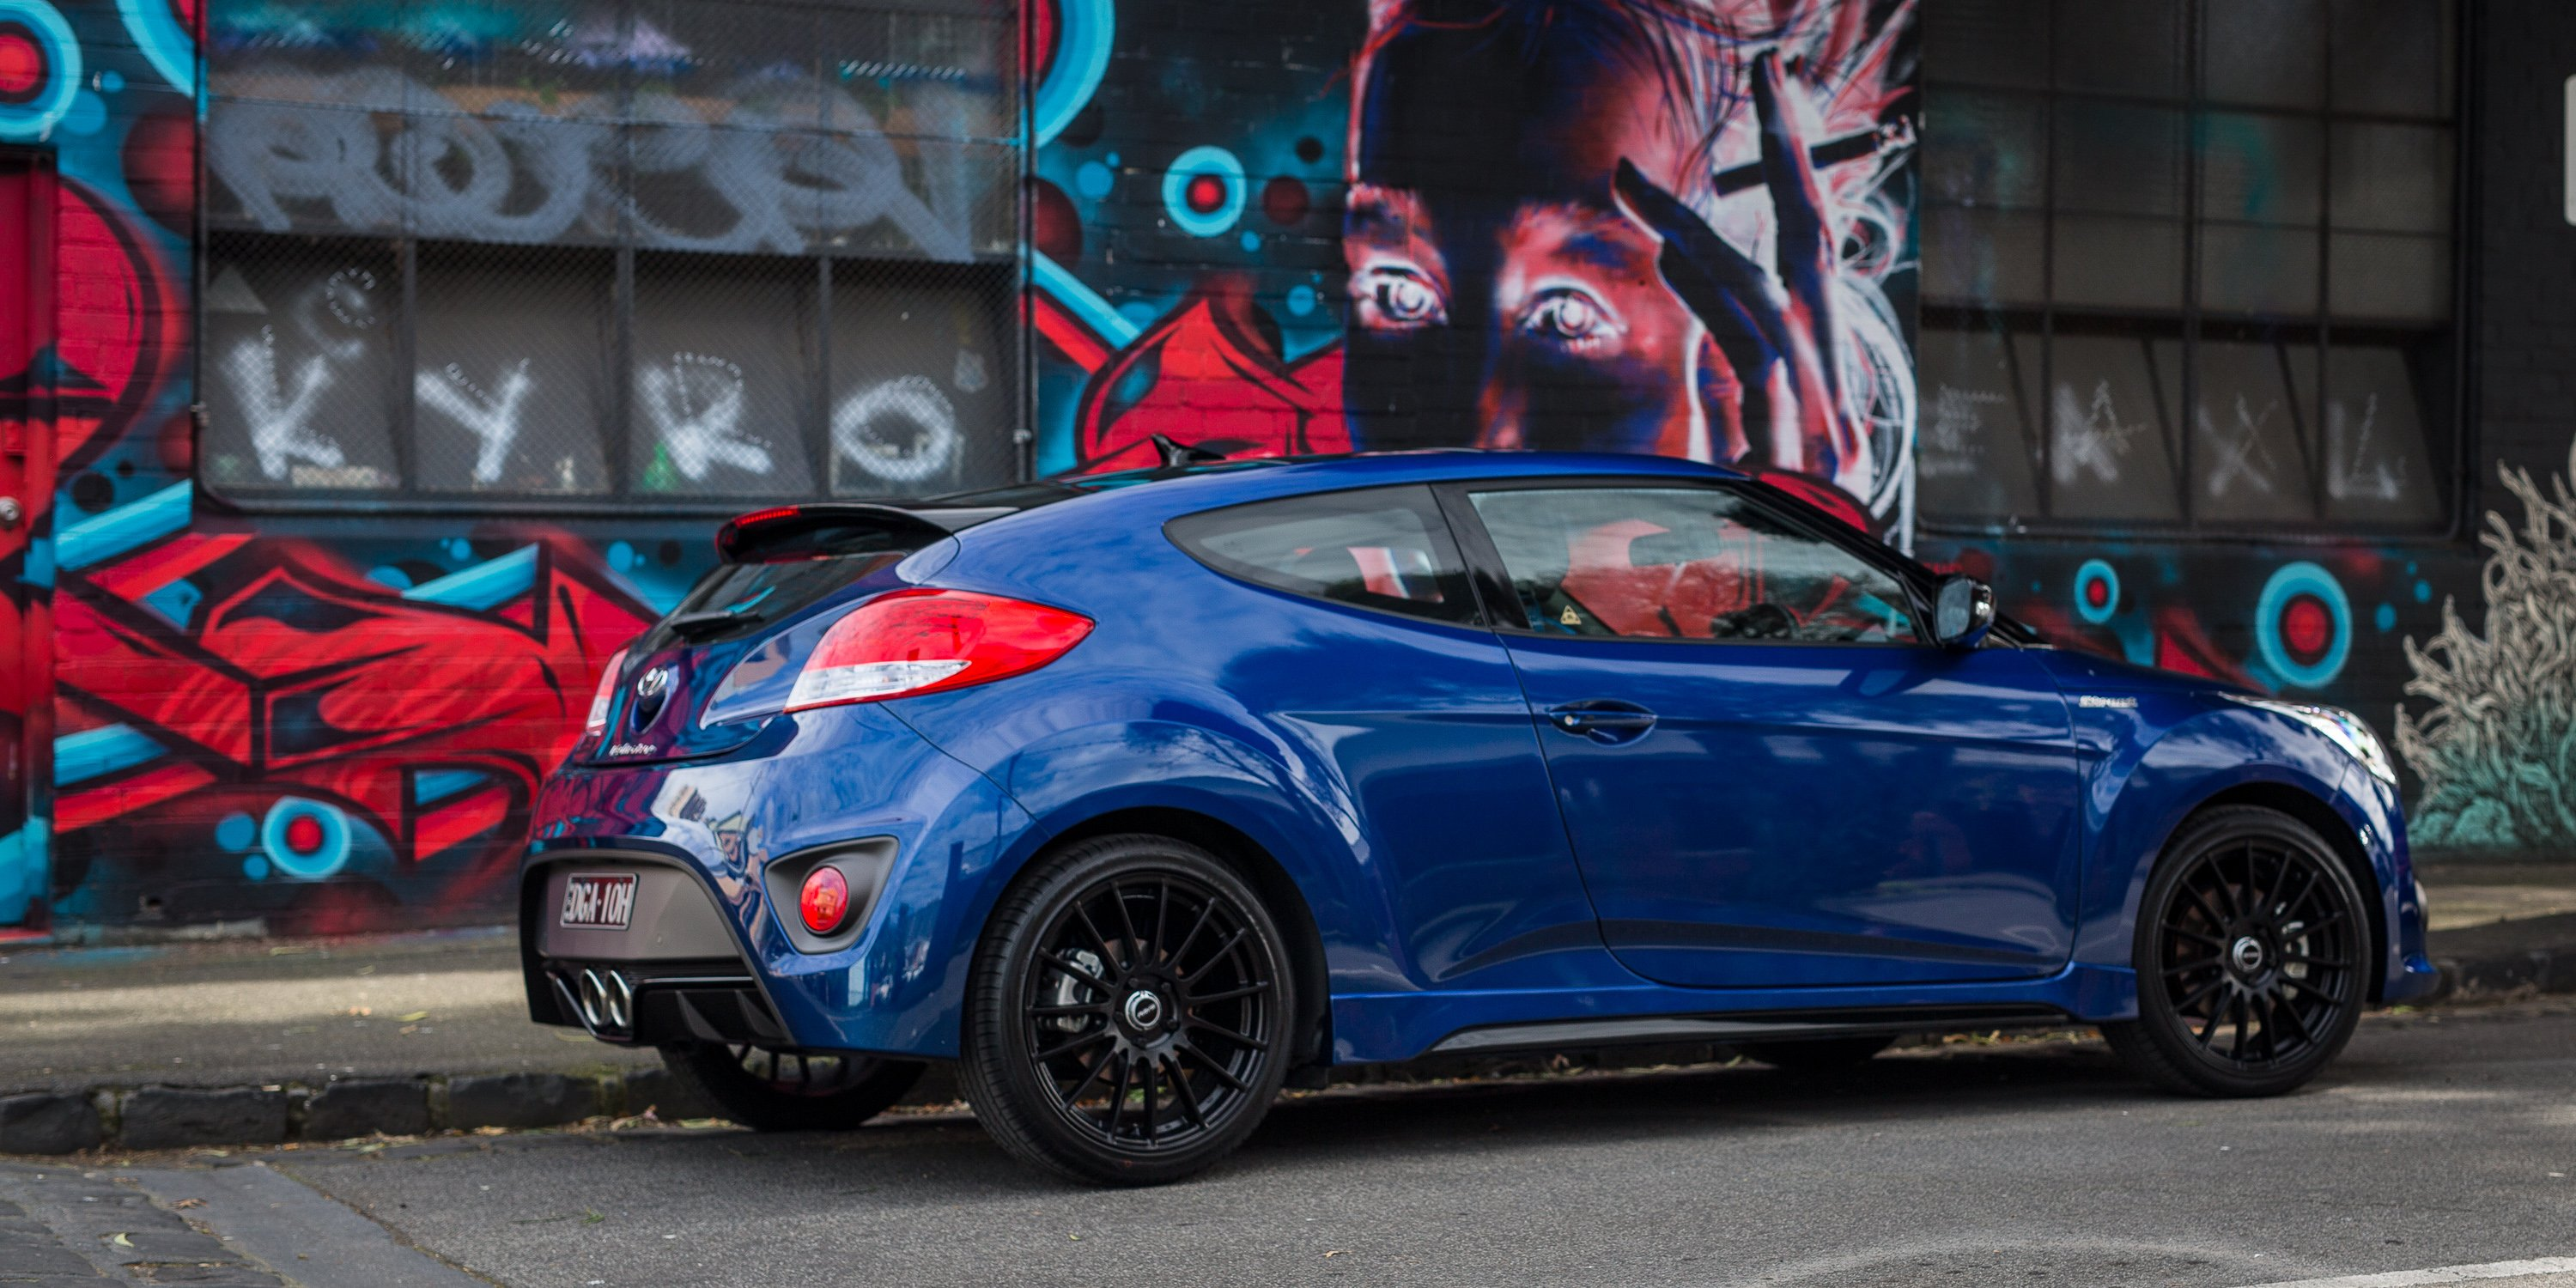 2016 hyundai veloster street turbo review photos caradvice. Black Bedroom Furniture Sets. Home Design Ideas